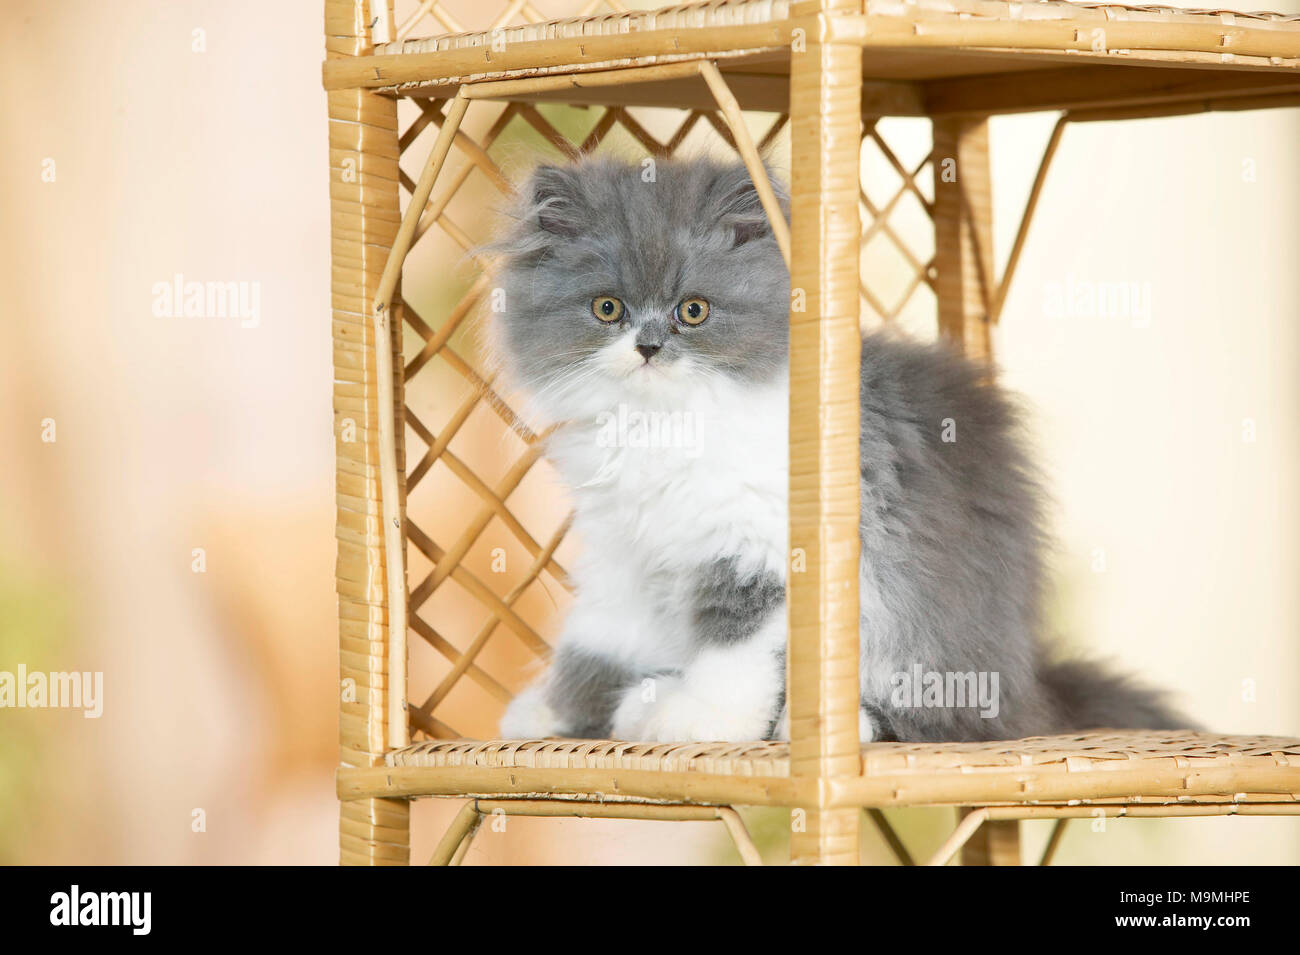 Persian Cat. Kitten sitting in a book-rack. Germany. - Stock Image